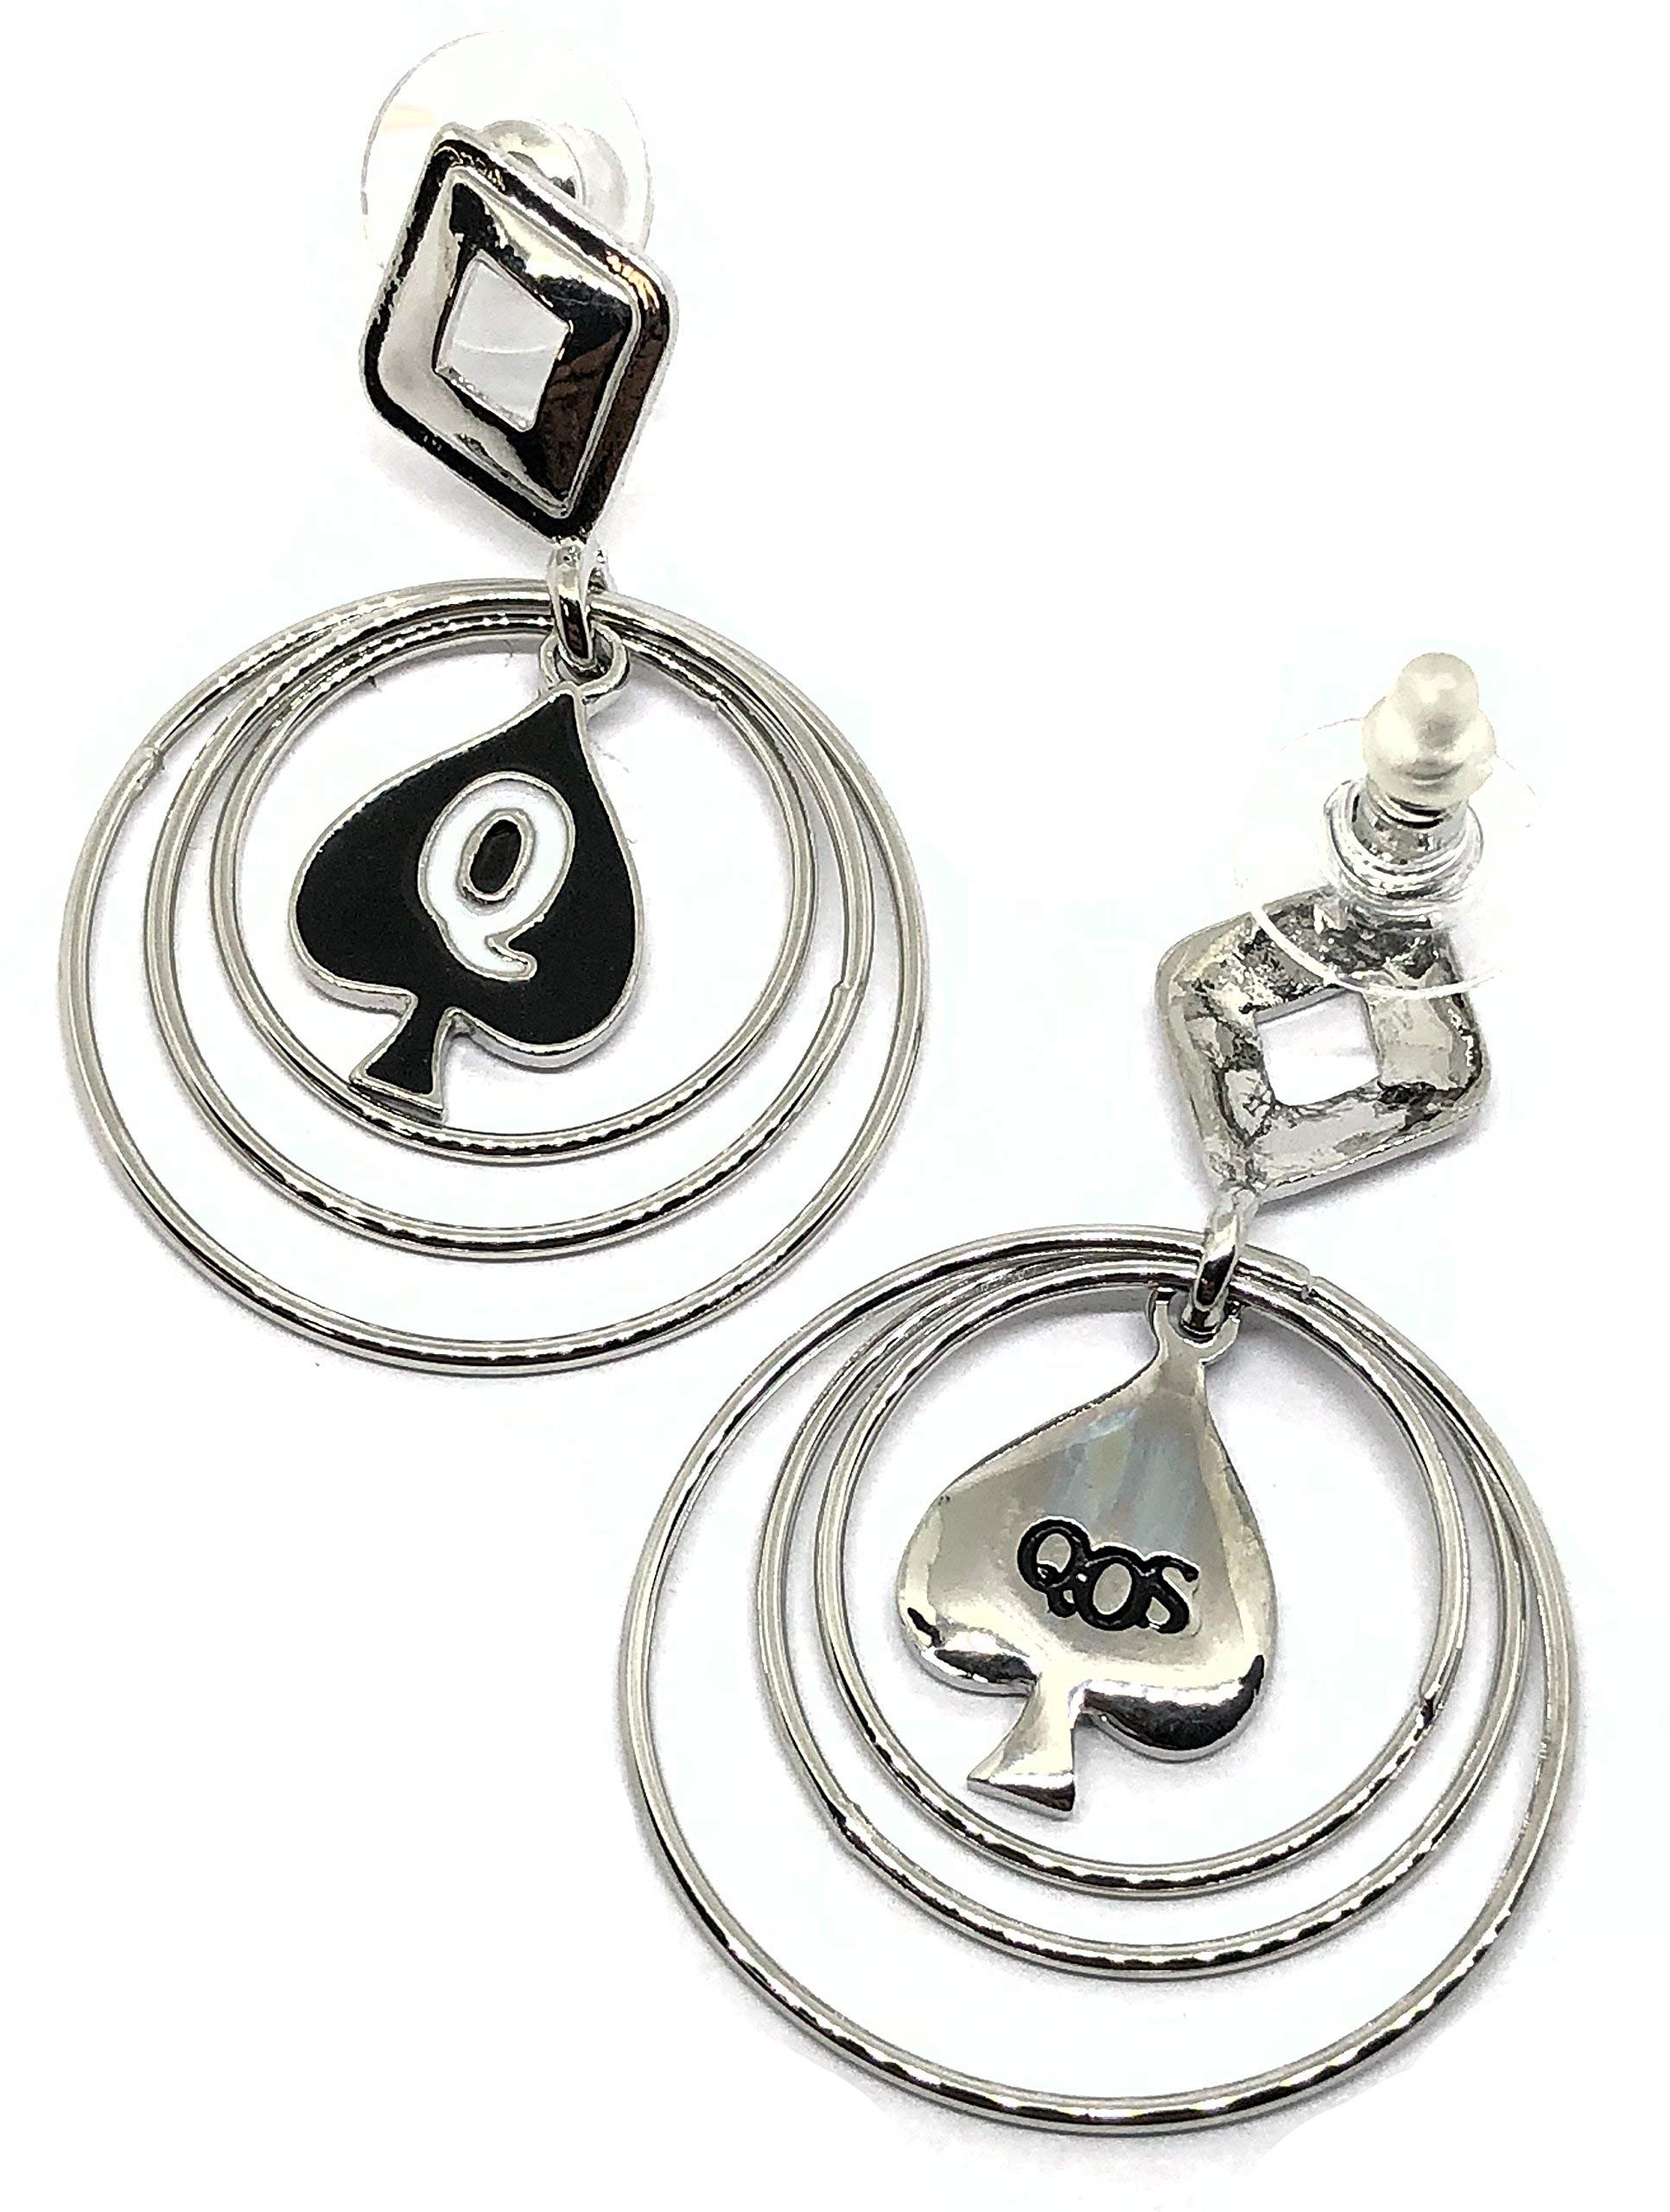 QOS Queen Of Spades Branded Multi Hoop Earrings with Hotwife Vixen Charm, Cuckold Swinger Lifestyle (Silver)